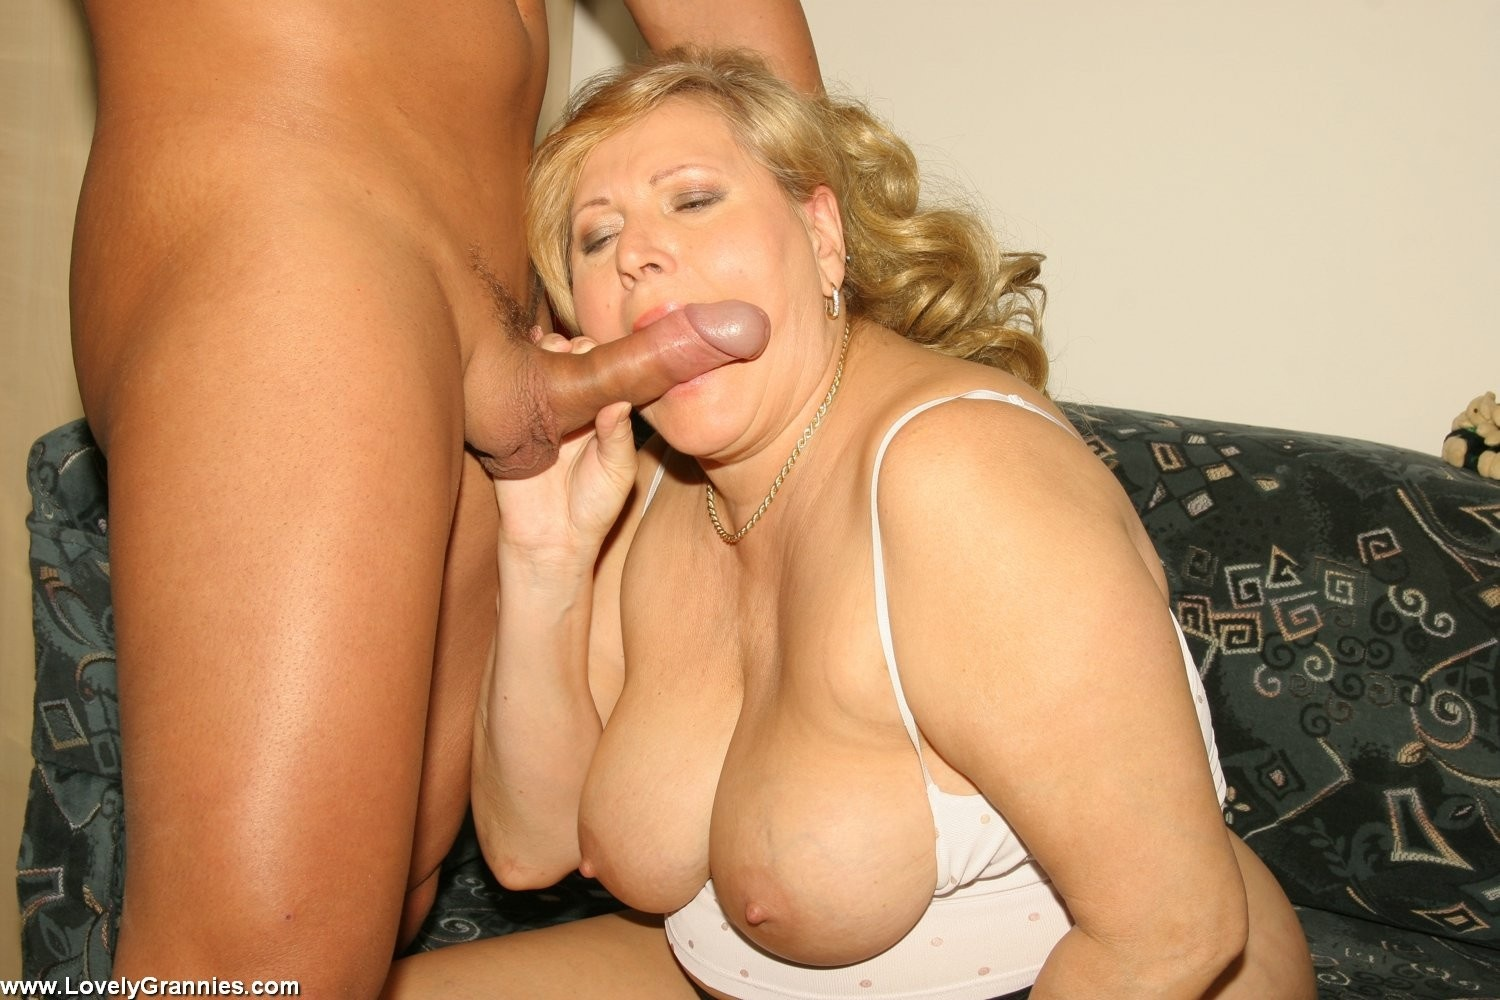 Hot blonde giving blowjob pics